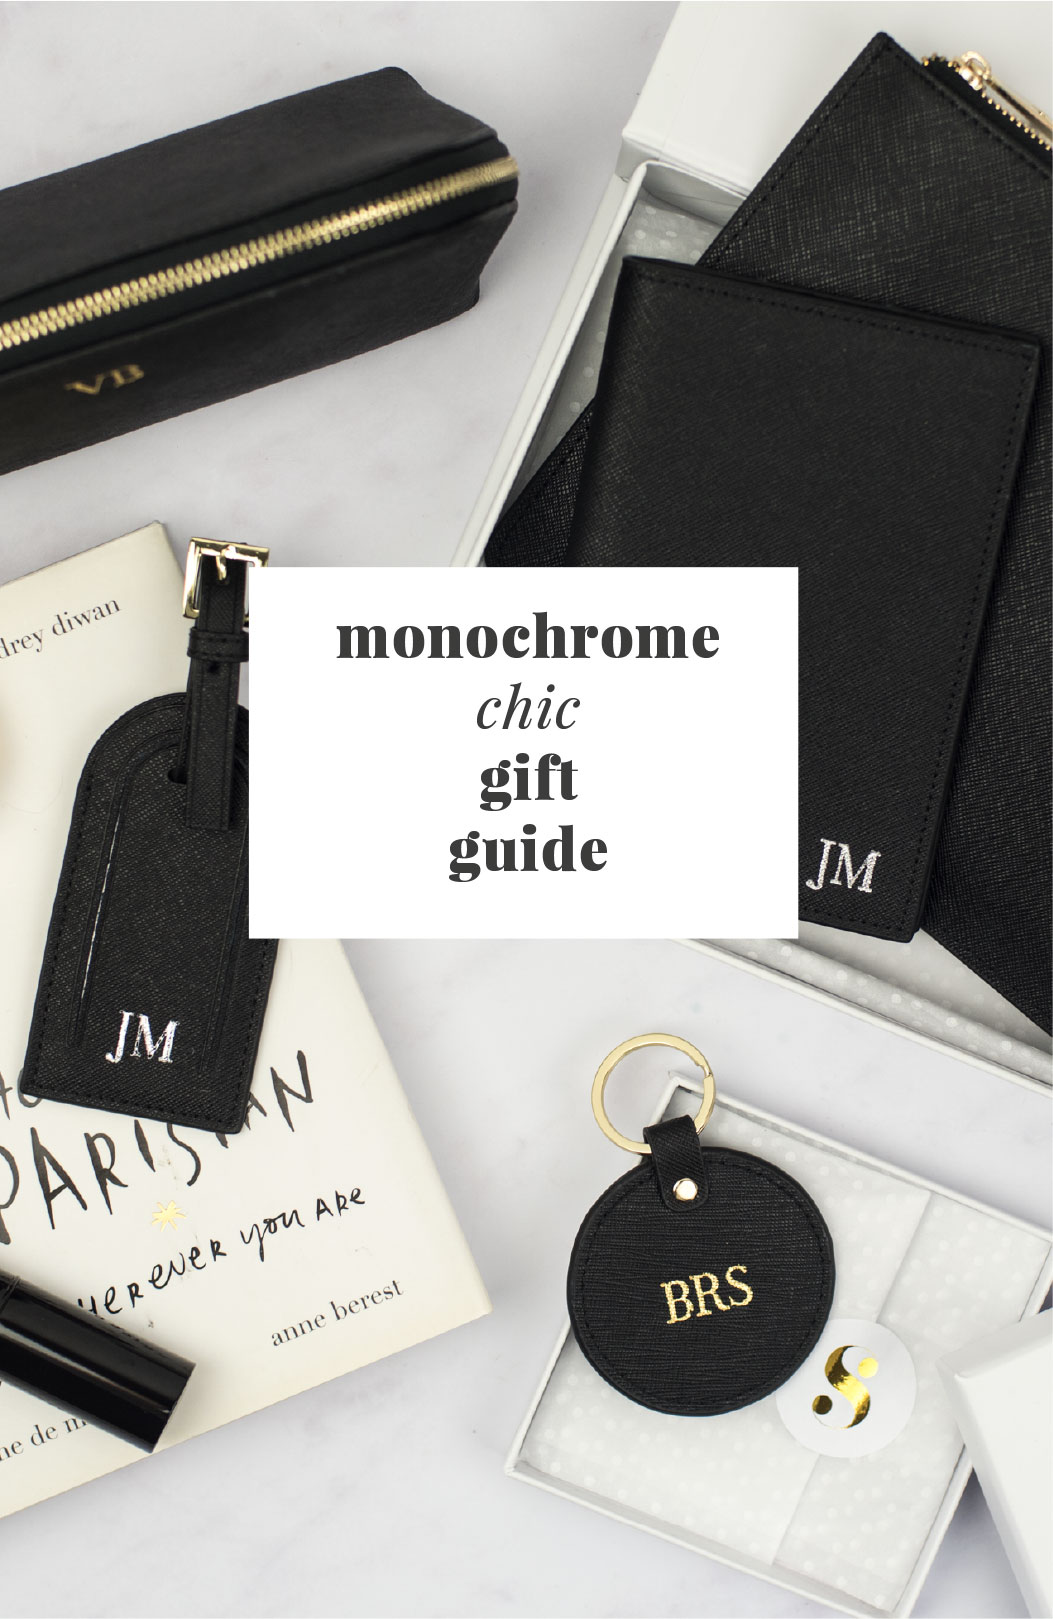 monochrome-chic-gift-guide-for-her.jpg